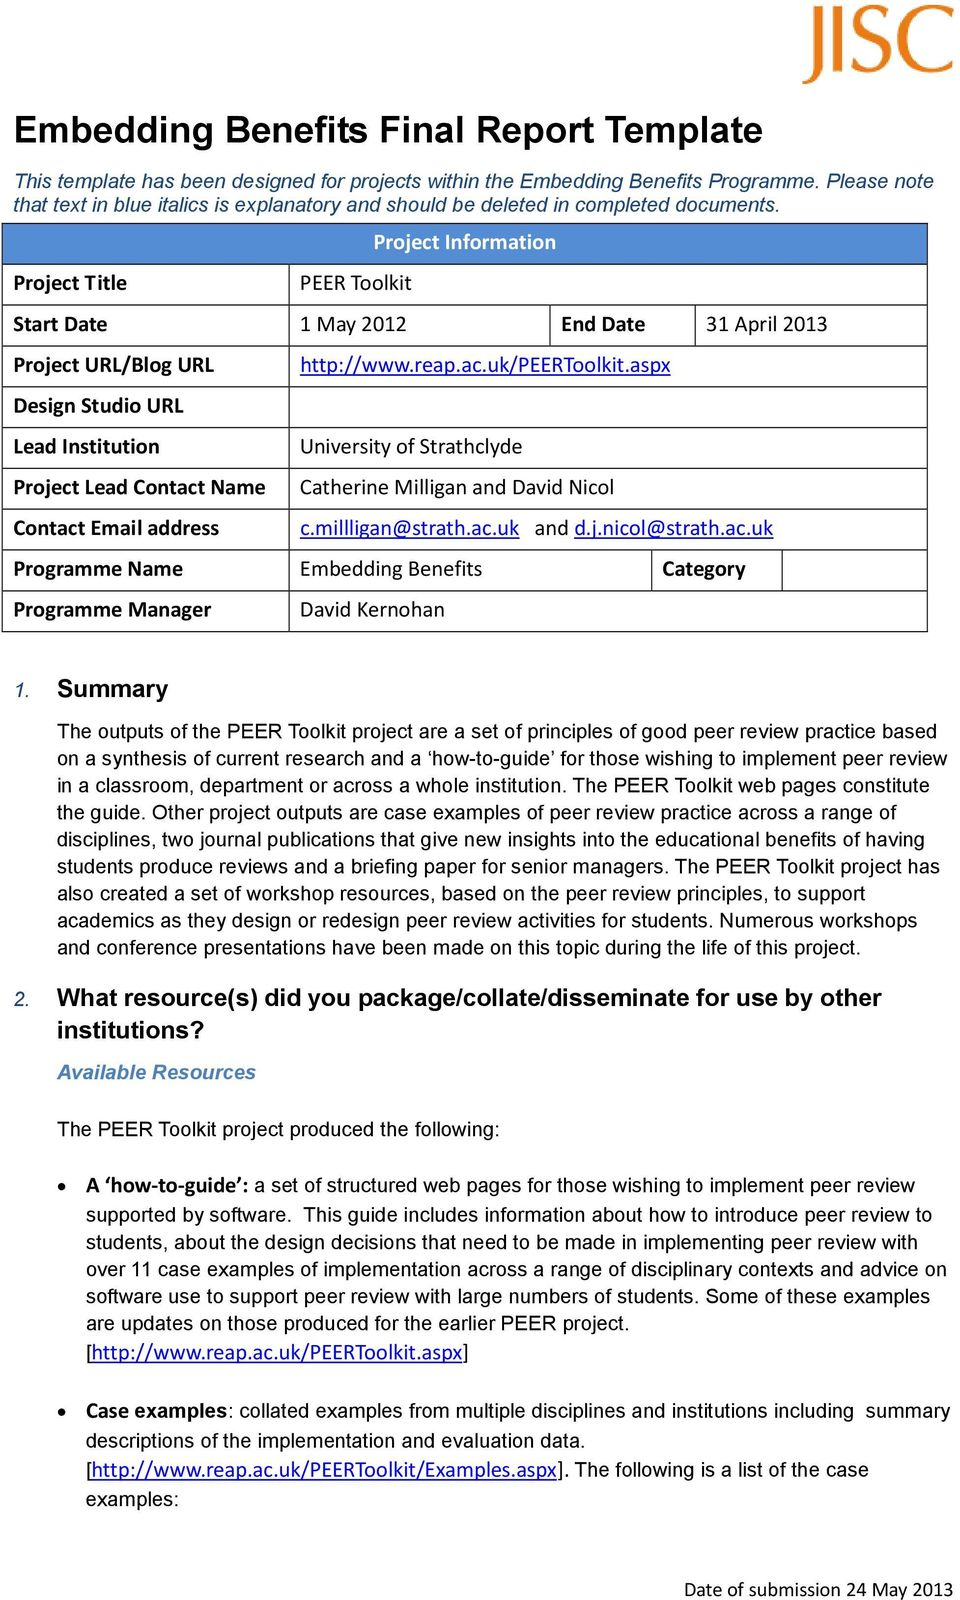 Project Information Project Title PEER Toolkit Start Date 1 May 2012 End Date 31 April 2013 Project URL/Blog URL http://www.reap.ac.uk/peertoolkit.